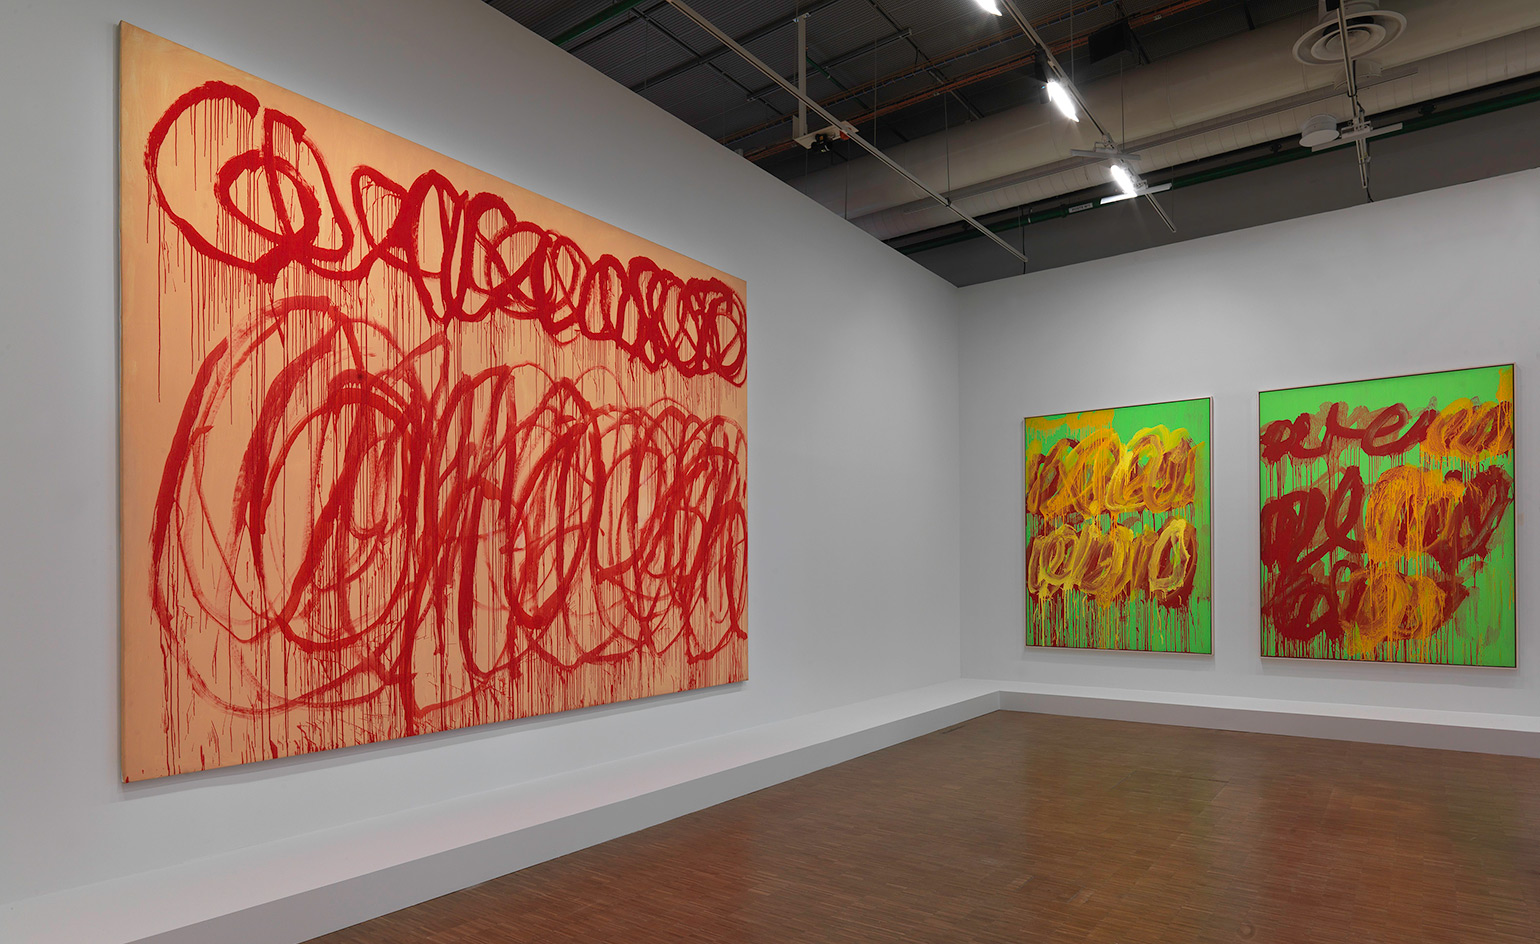 Cy twombly receives a definitive retrospective at the for Art minimal centre pompidou